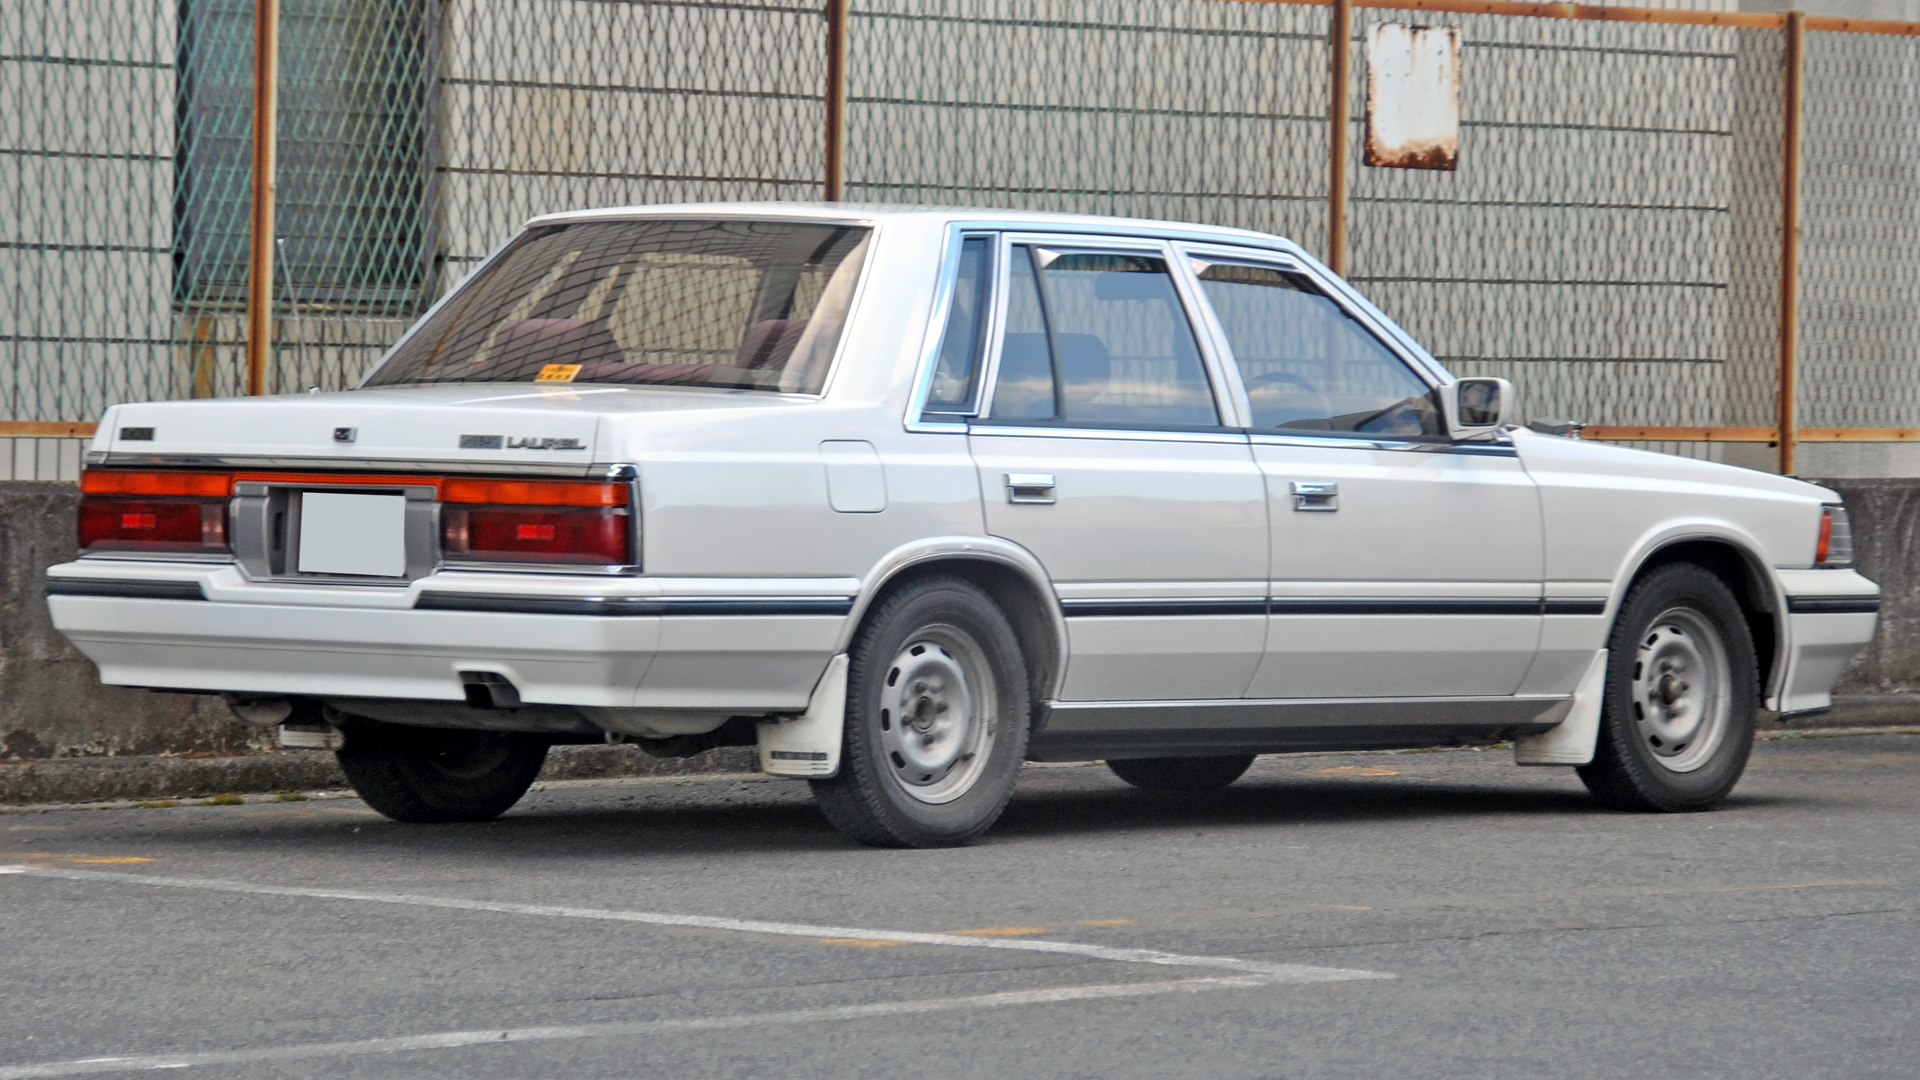 Nissan Laurel #6